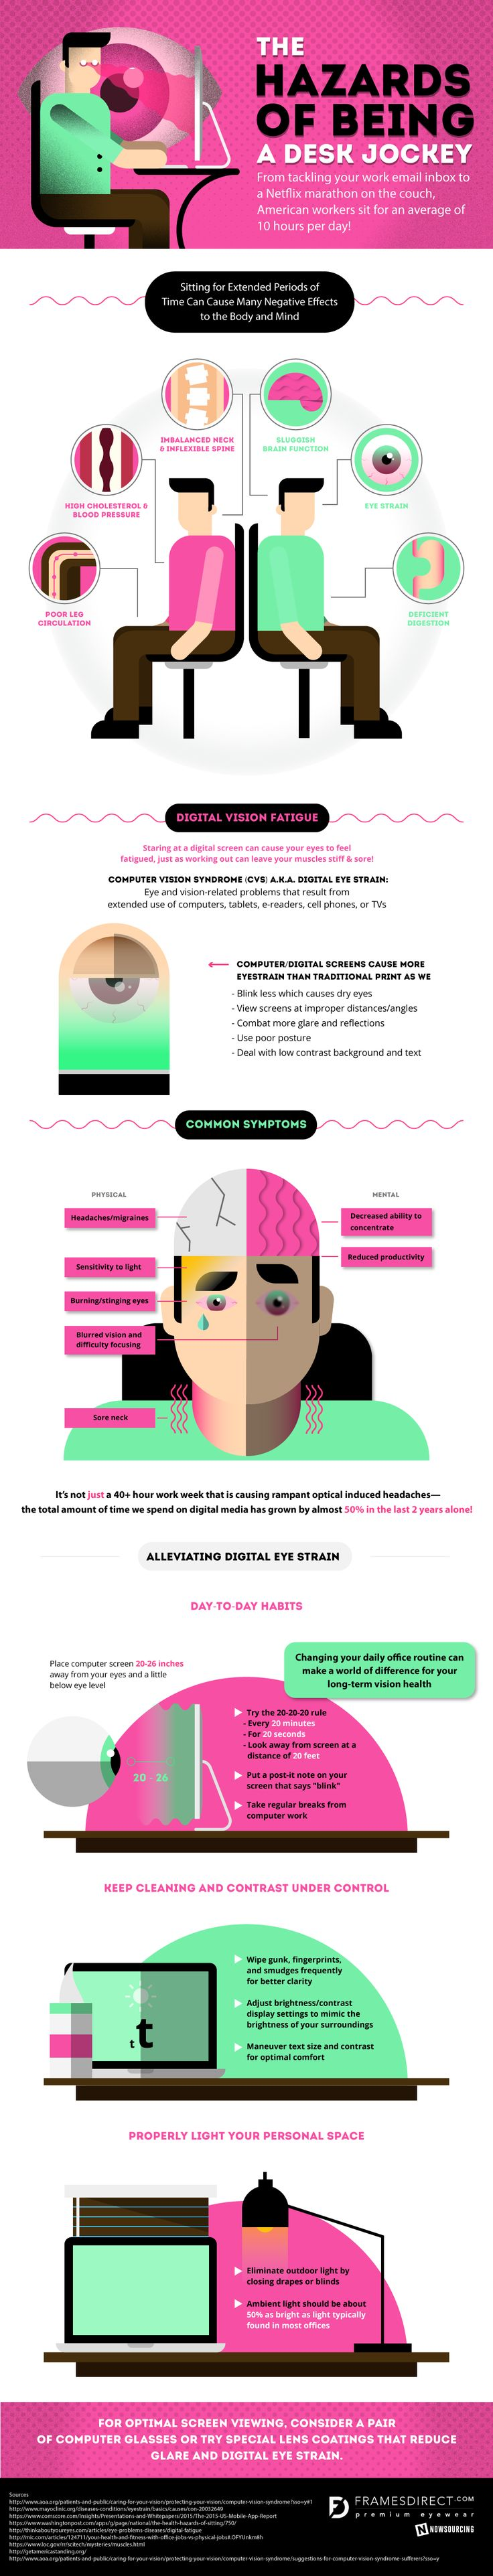 The Hazards of Being a Desk Jockey #Infographic #Health